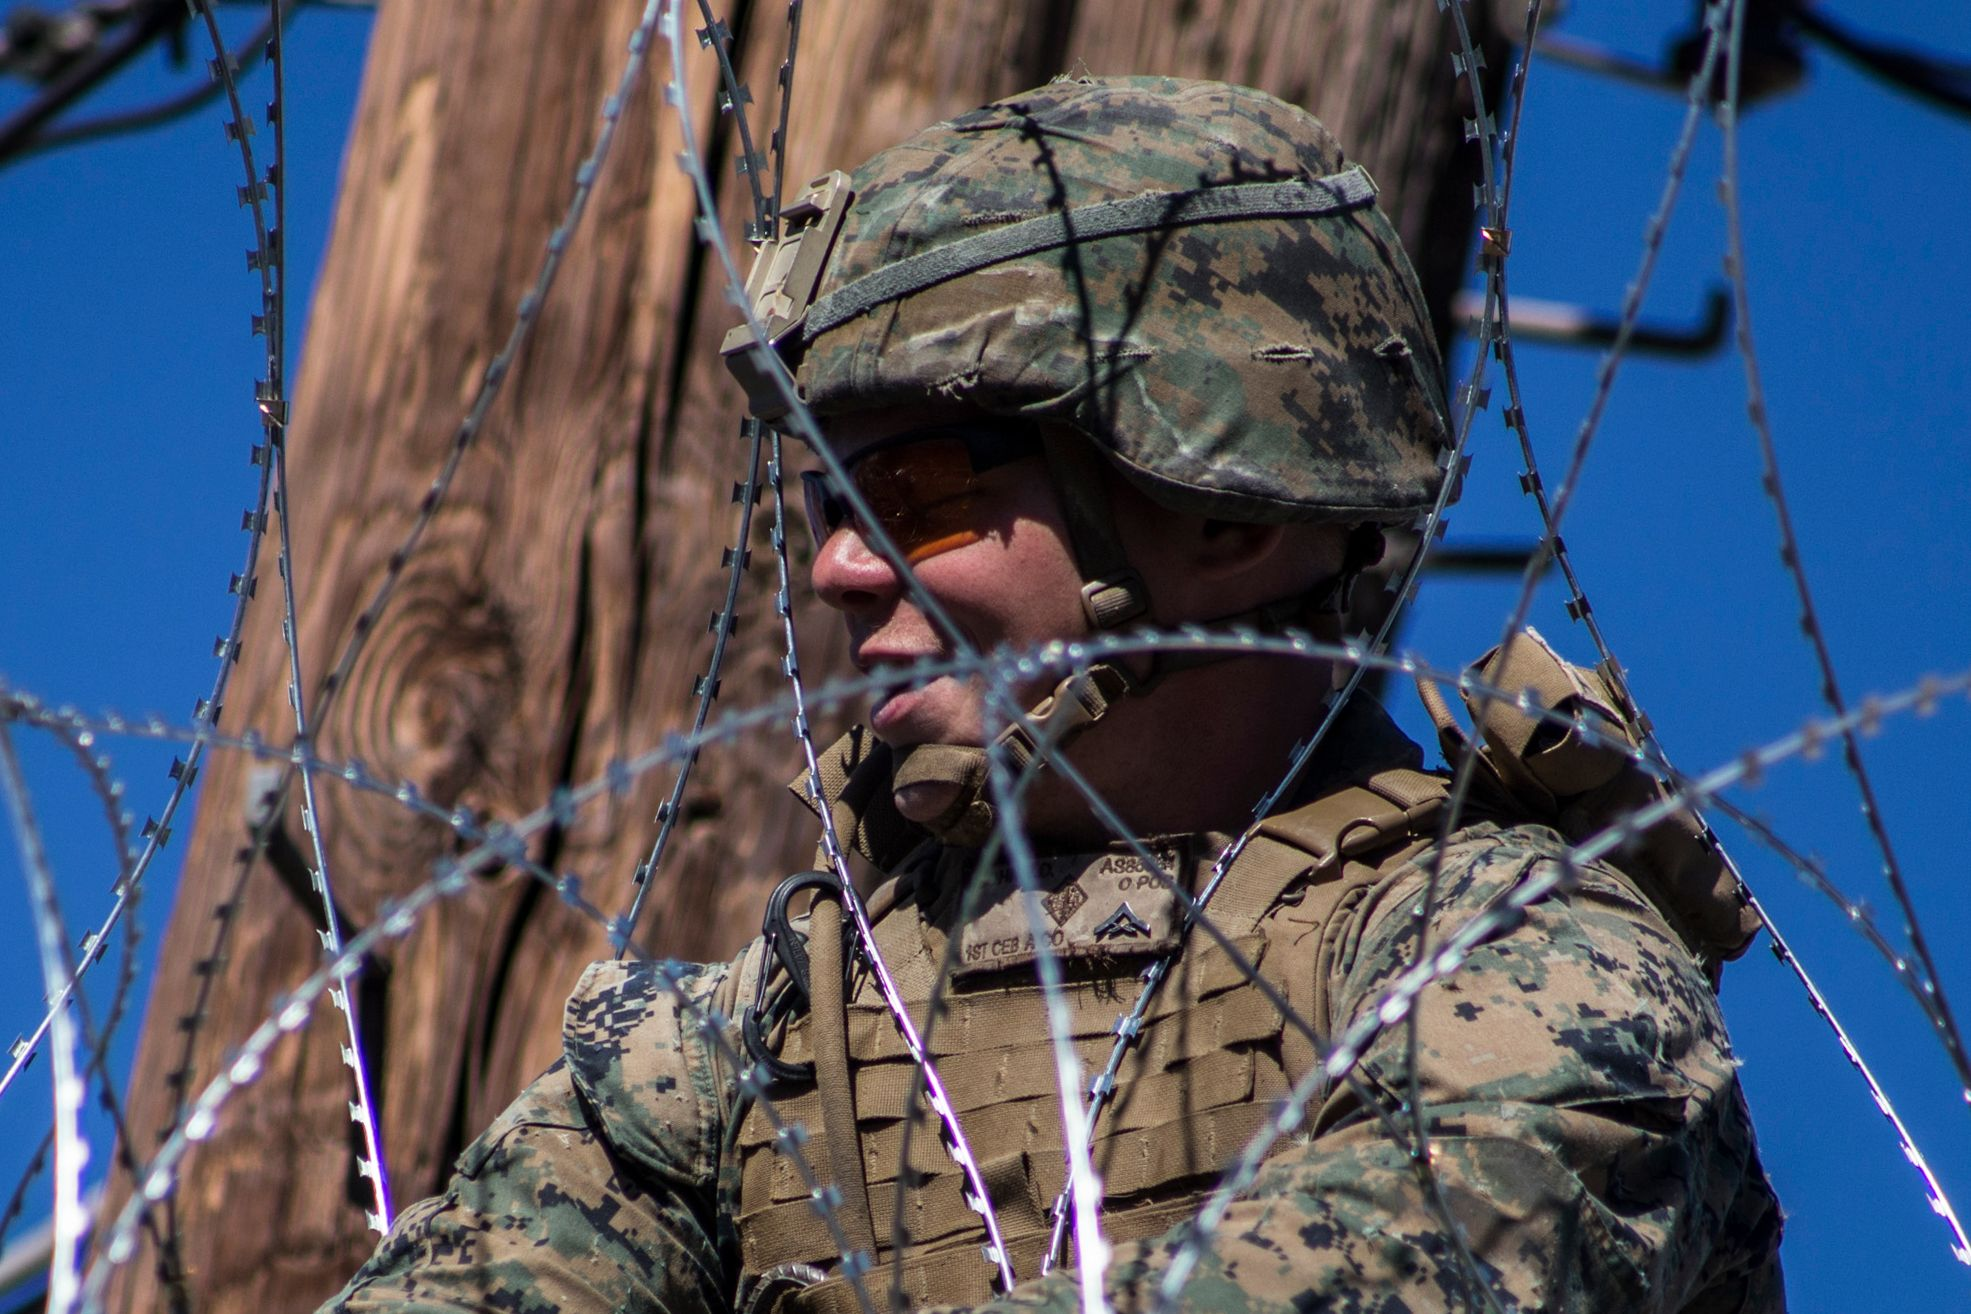 U.S. Army soldiers are seen from the US-Mexico border wall with barbed wire on November 26, 2018 in Mexicali, Mexico. | Source: Getty Images